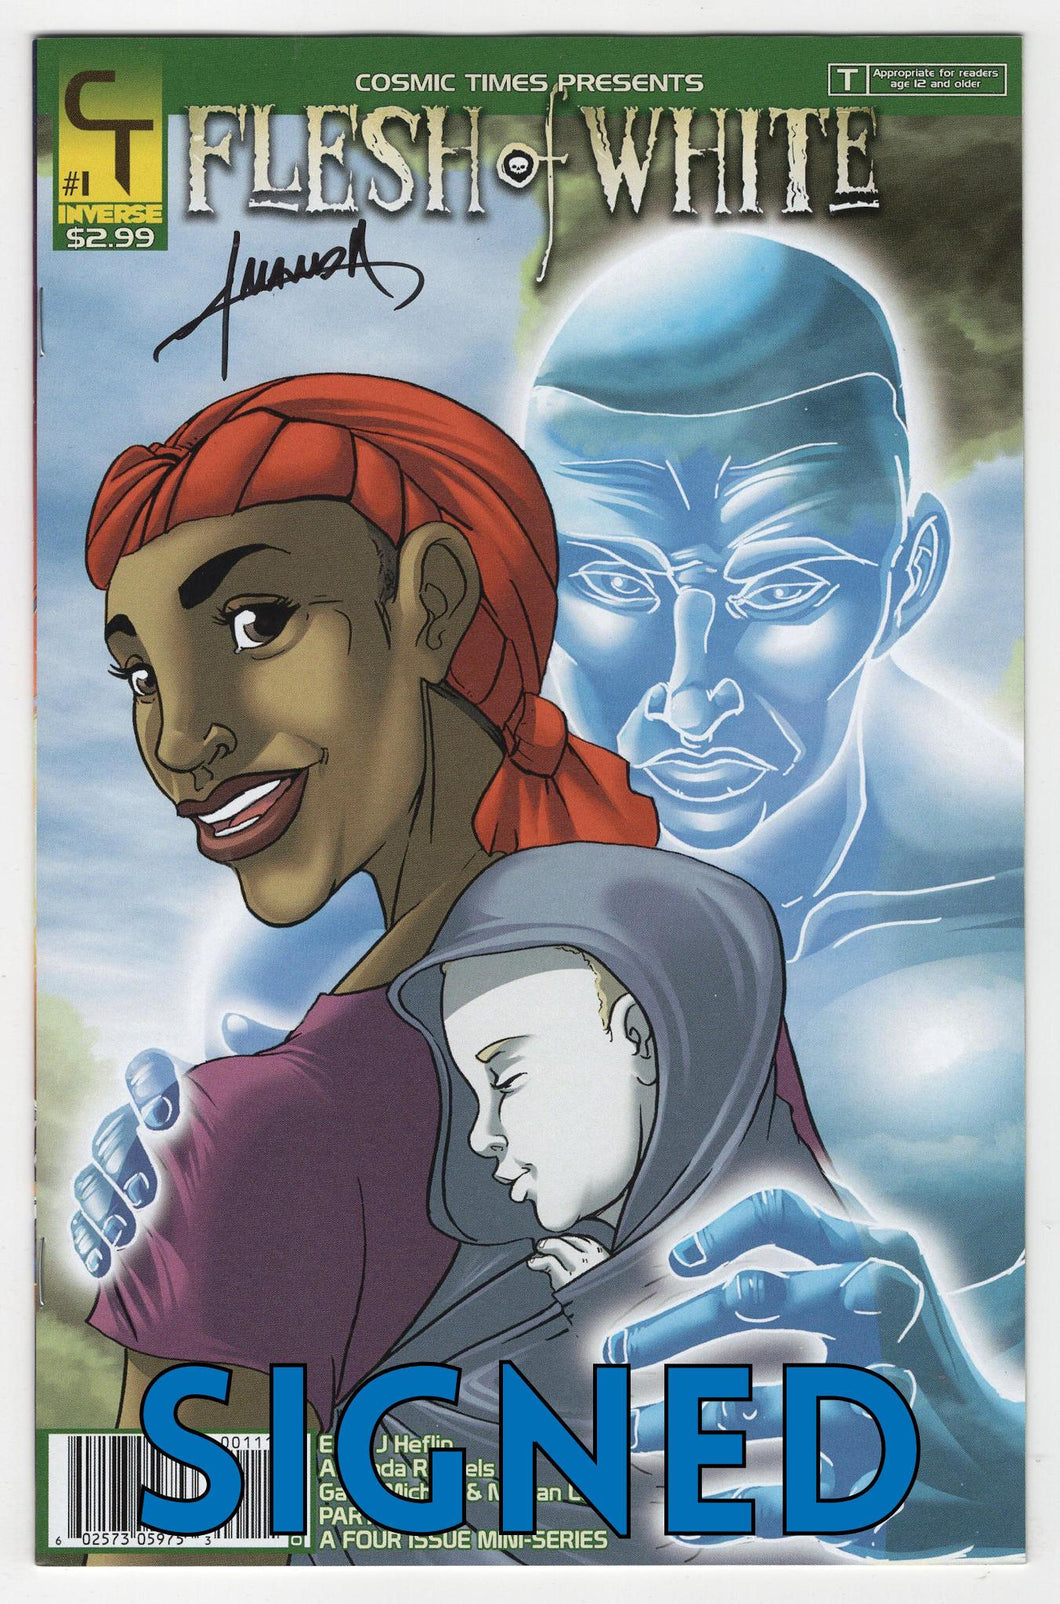 Flesh of White #1 SIGNED Cover Front